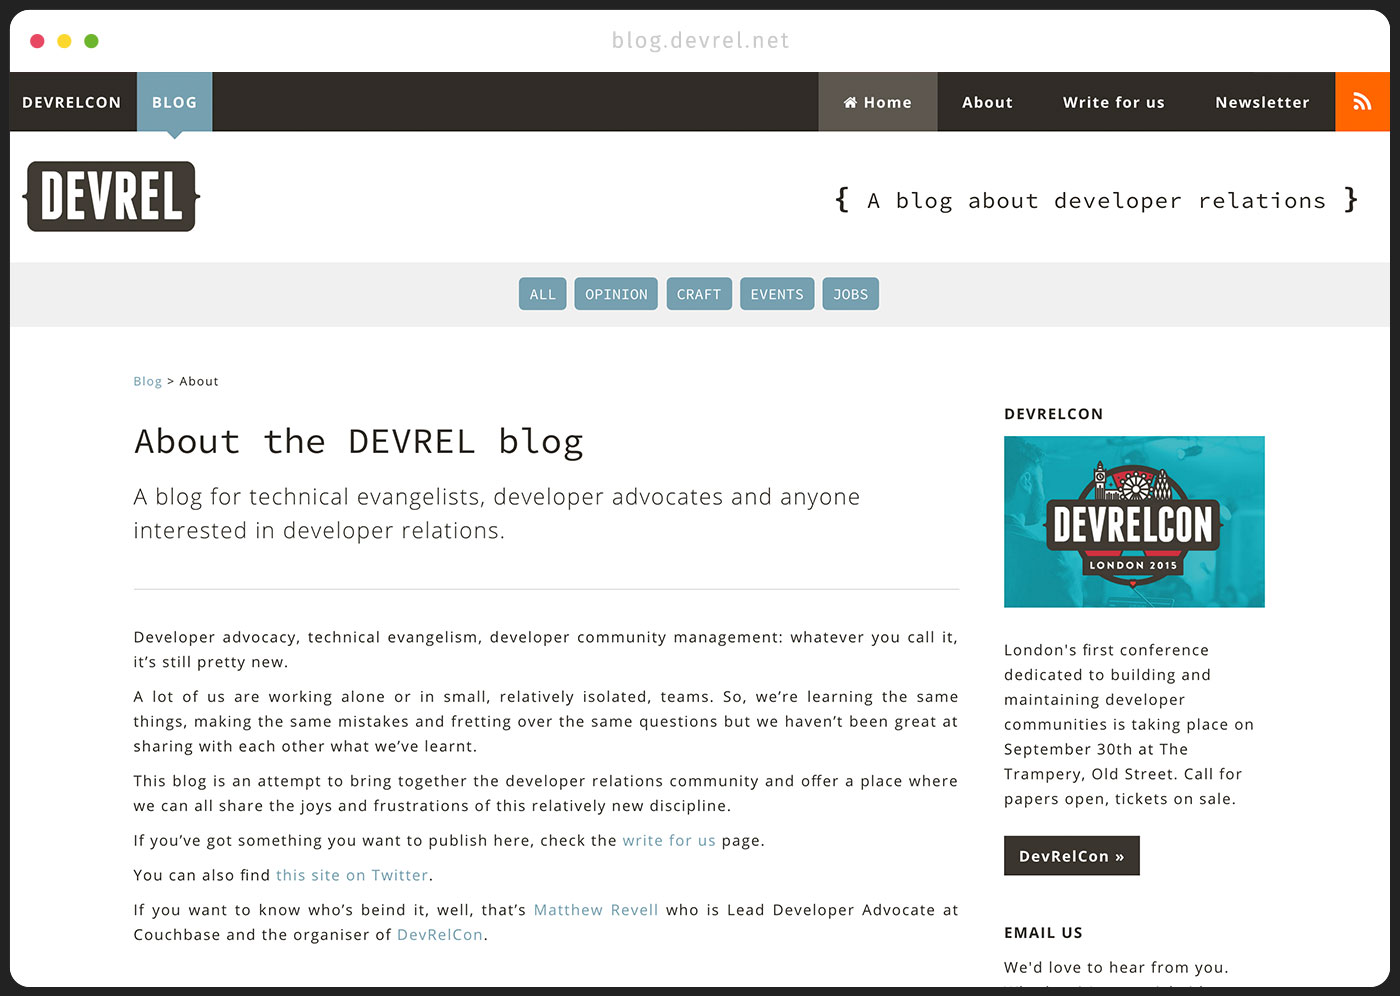 DevRel Blog - About